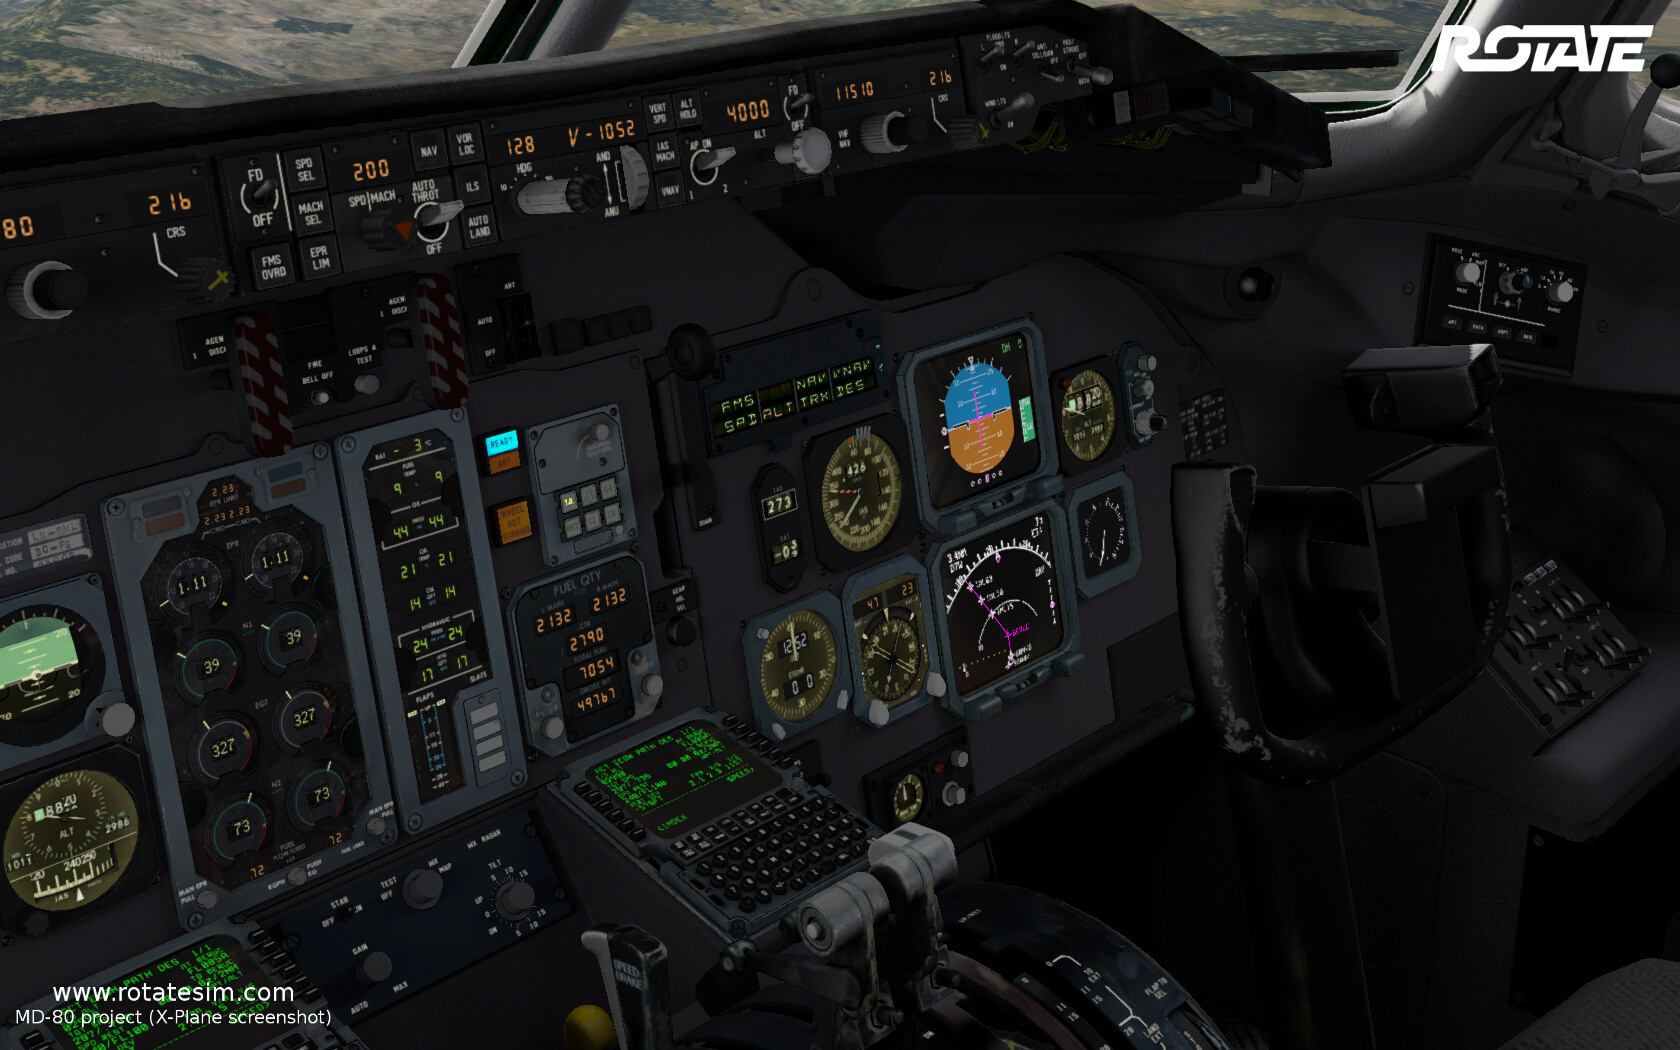 MD-80 Screenshot 38